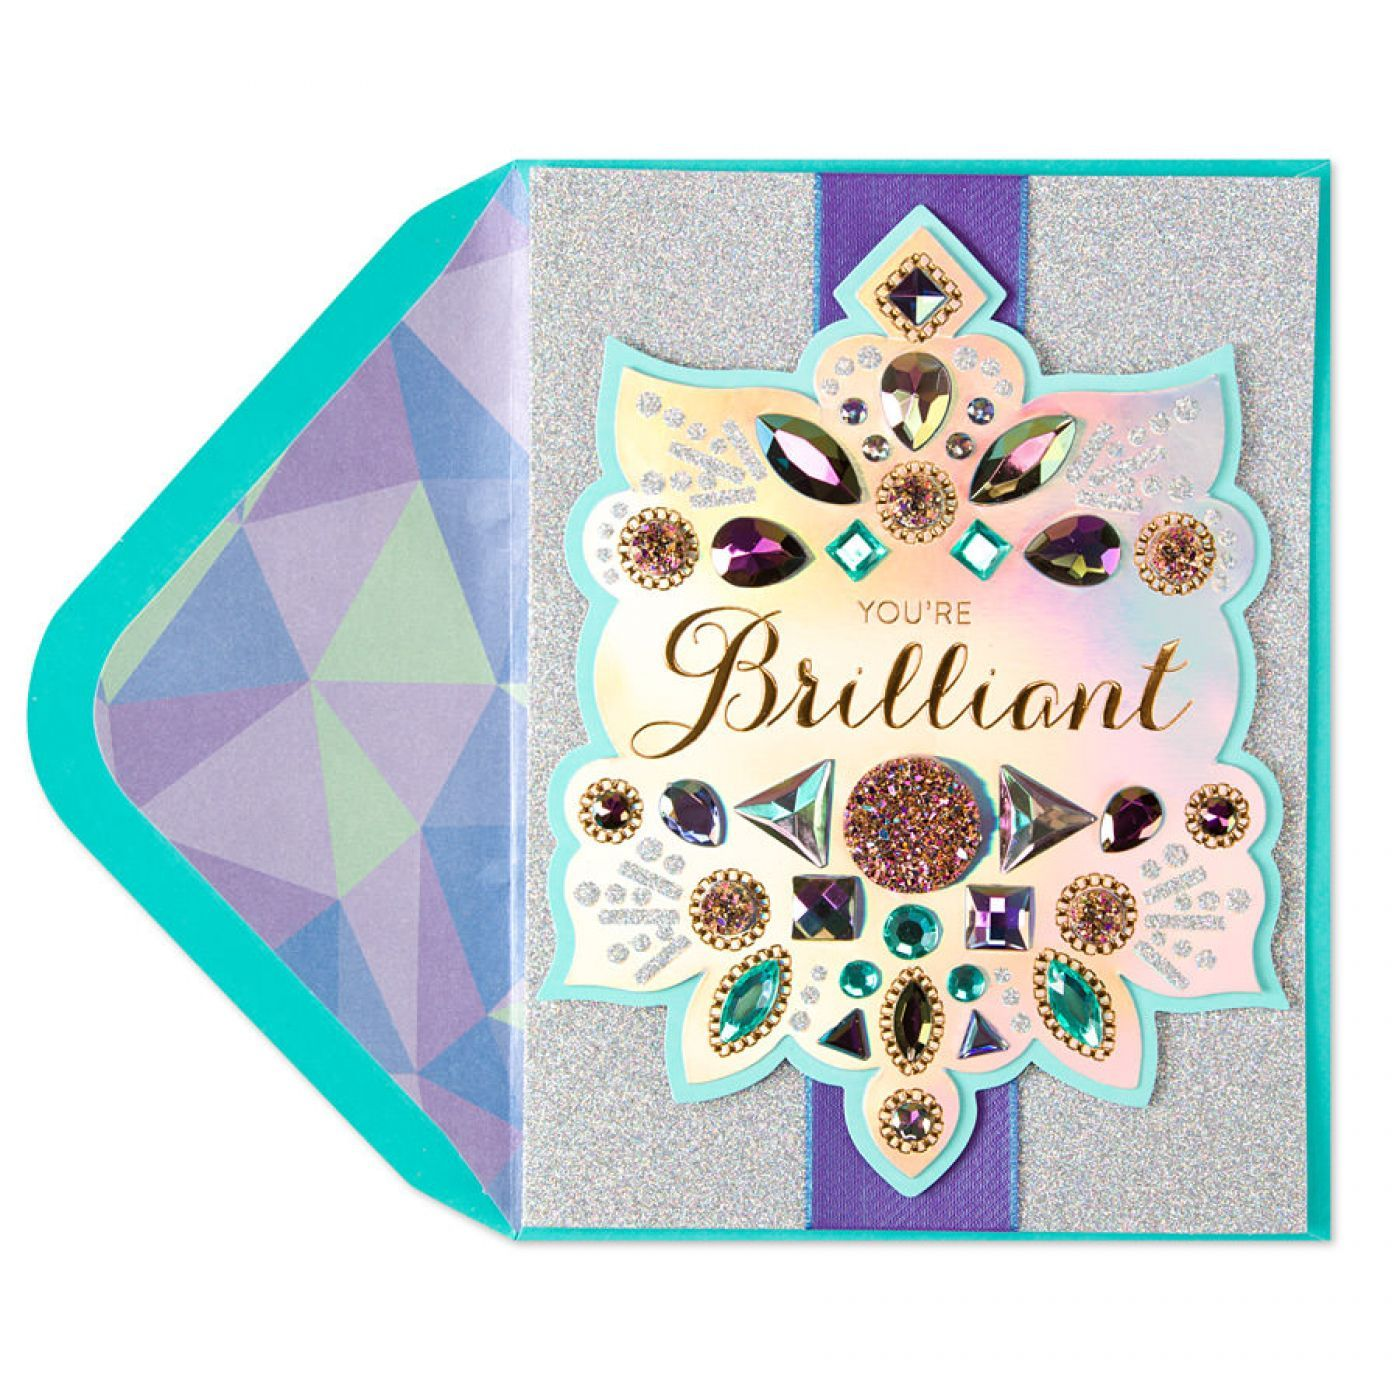 Holographic brilliant birthday birthday cards greeting cards holographic brilliant birthday birthday cards greeting cards kristyandbryce Gallery